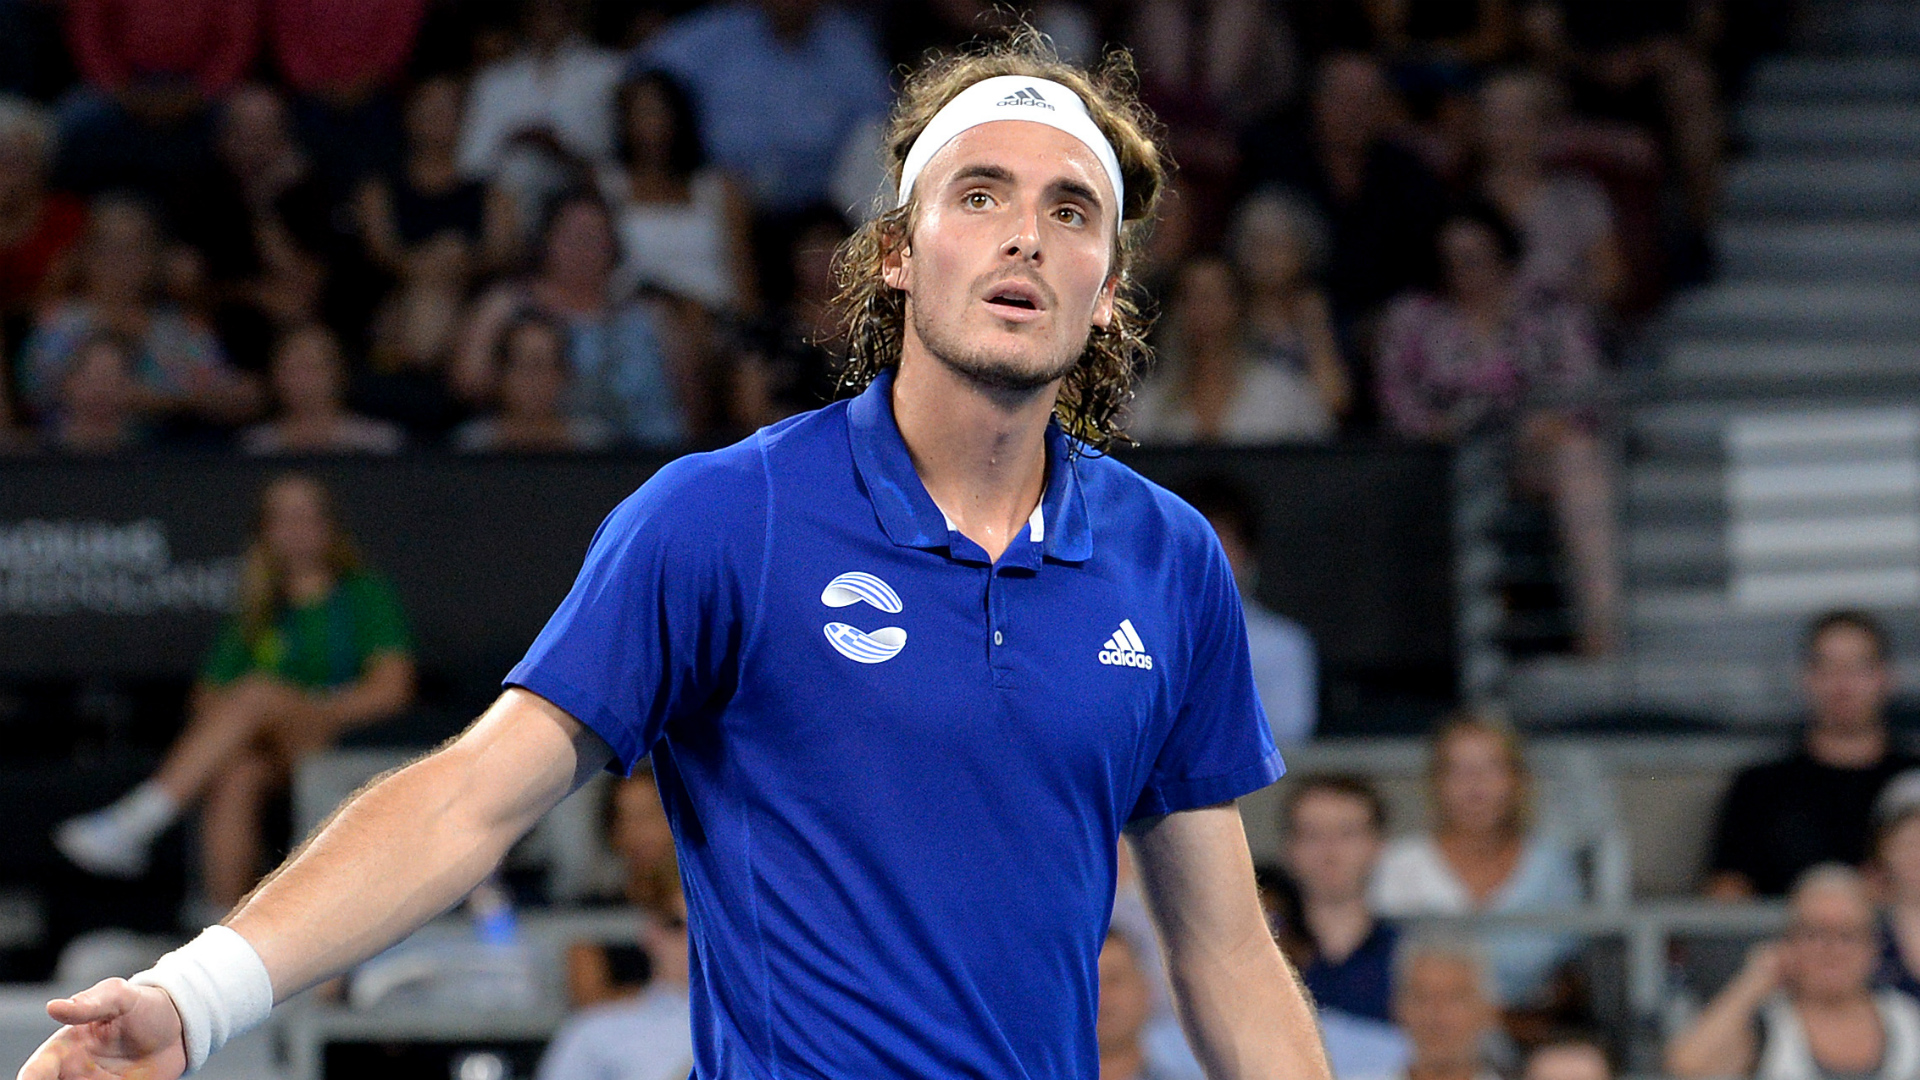 Stefanos Tsitsipas Likely To Be Grounded For Injuring Father In Atp Cup Loss To Nick Kyrgios Sporting News Australia